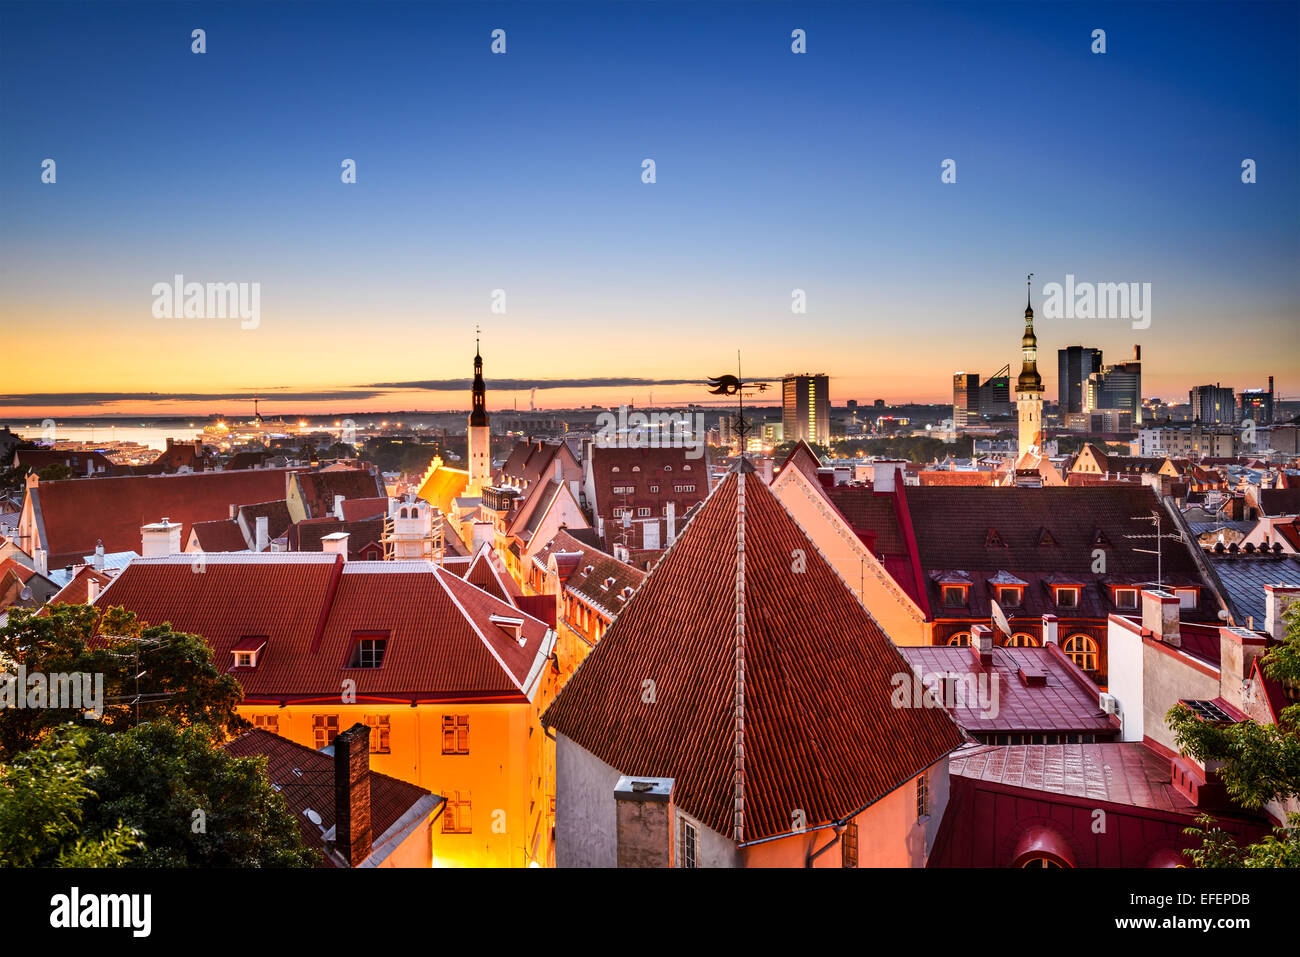 Tallinn, Estonia dawn skyline in the old city. - Stock Image